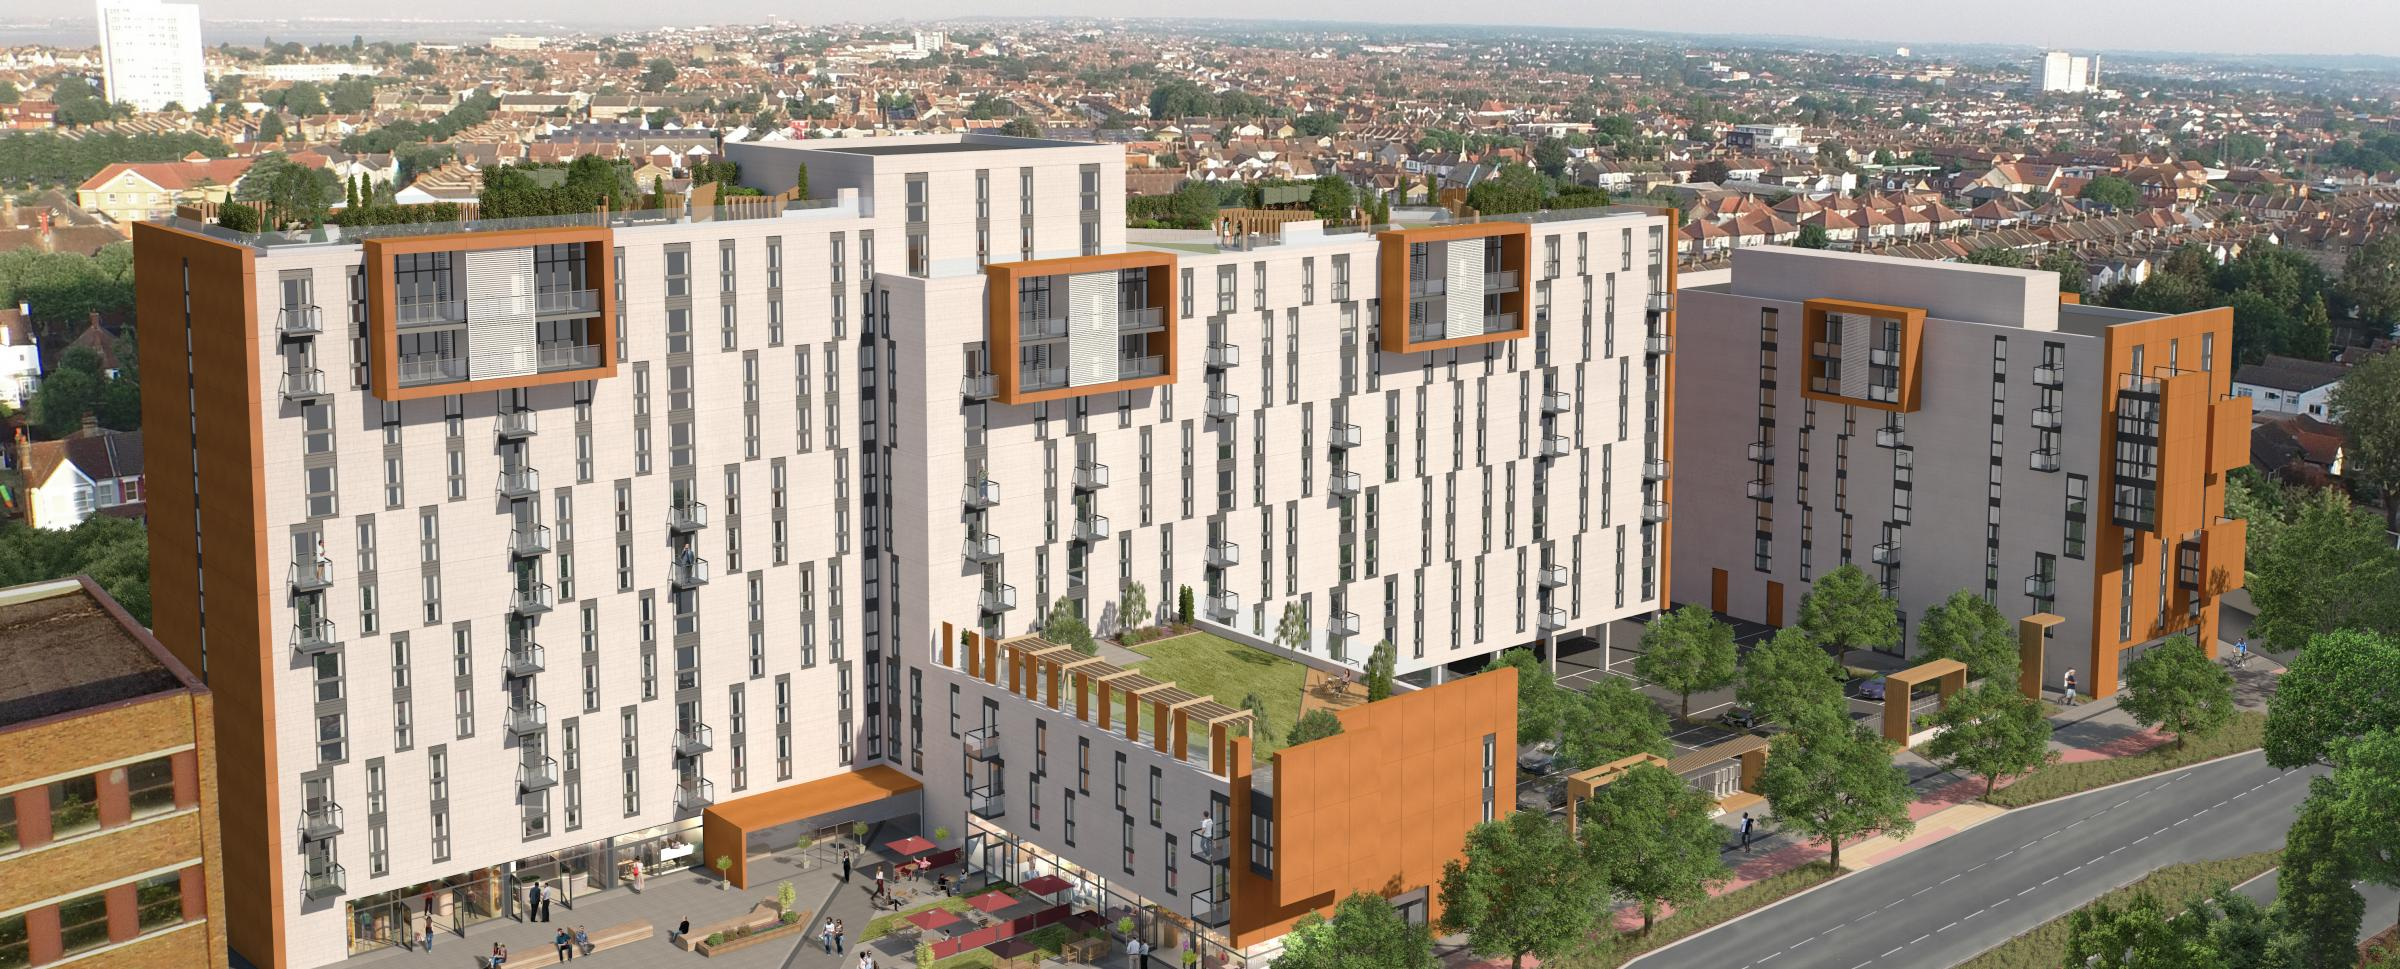 heath and carby tower blocks in southend set to finally be heath and carby tower blocks in southend set to finally be transformed from echo